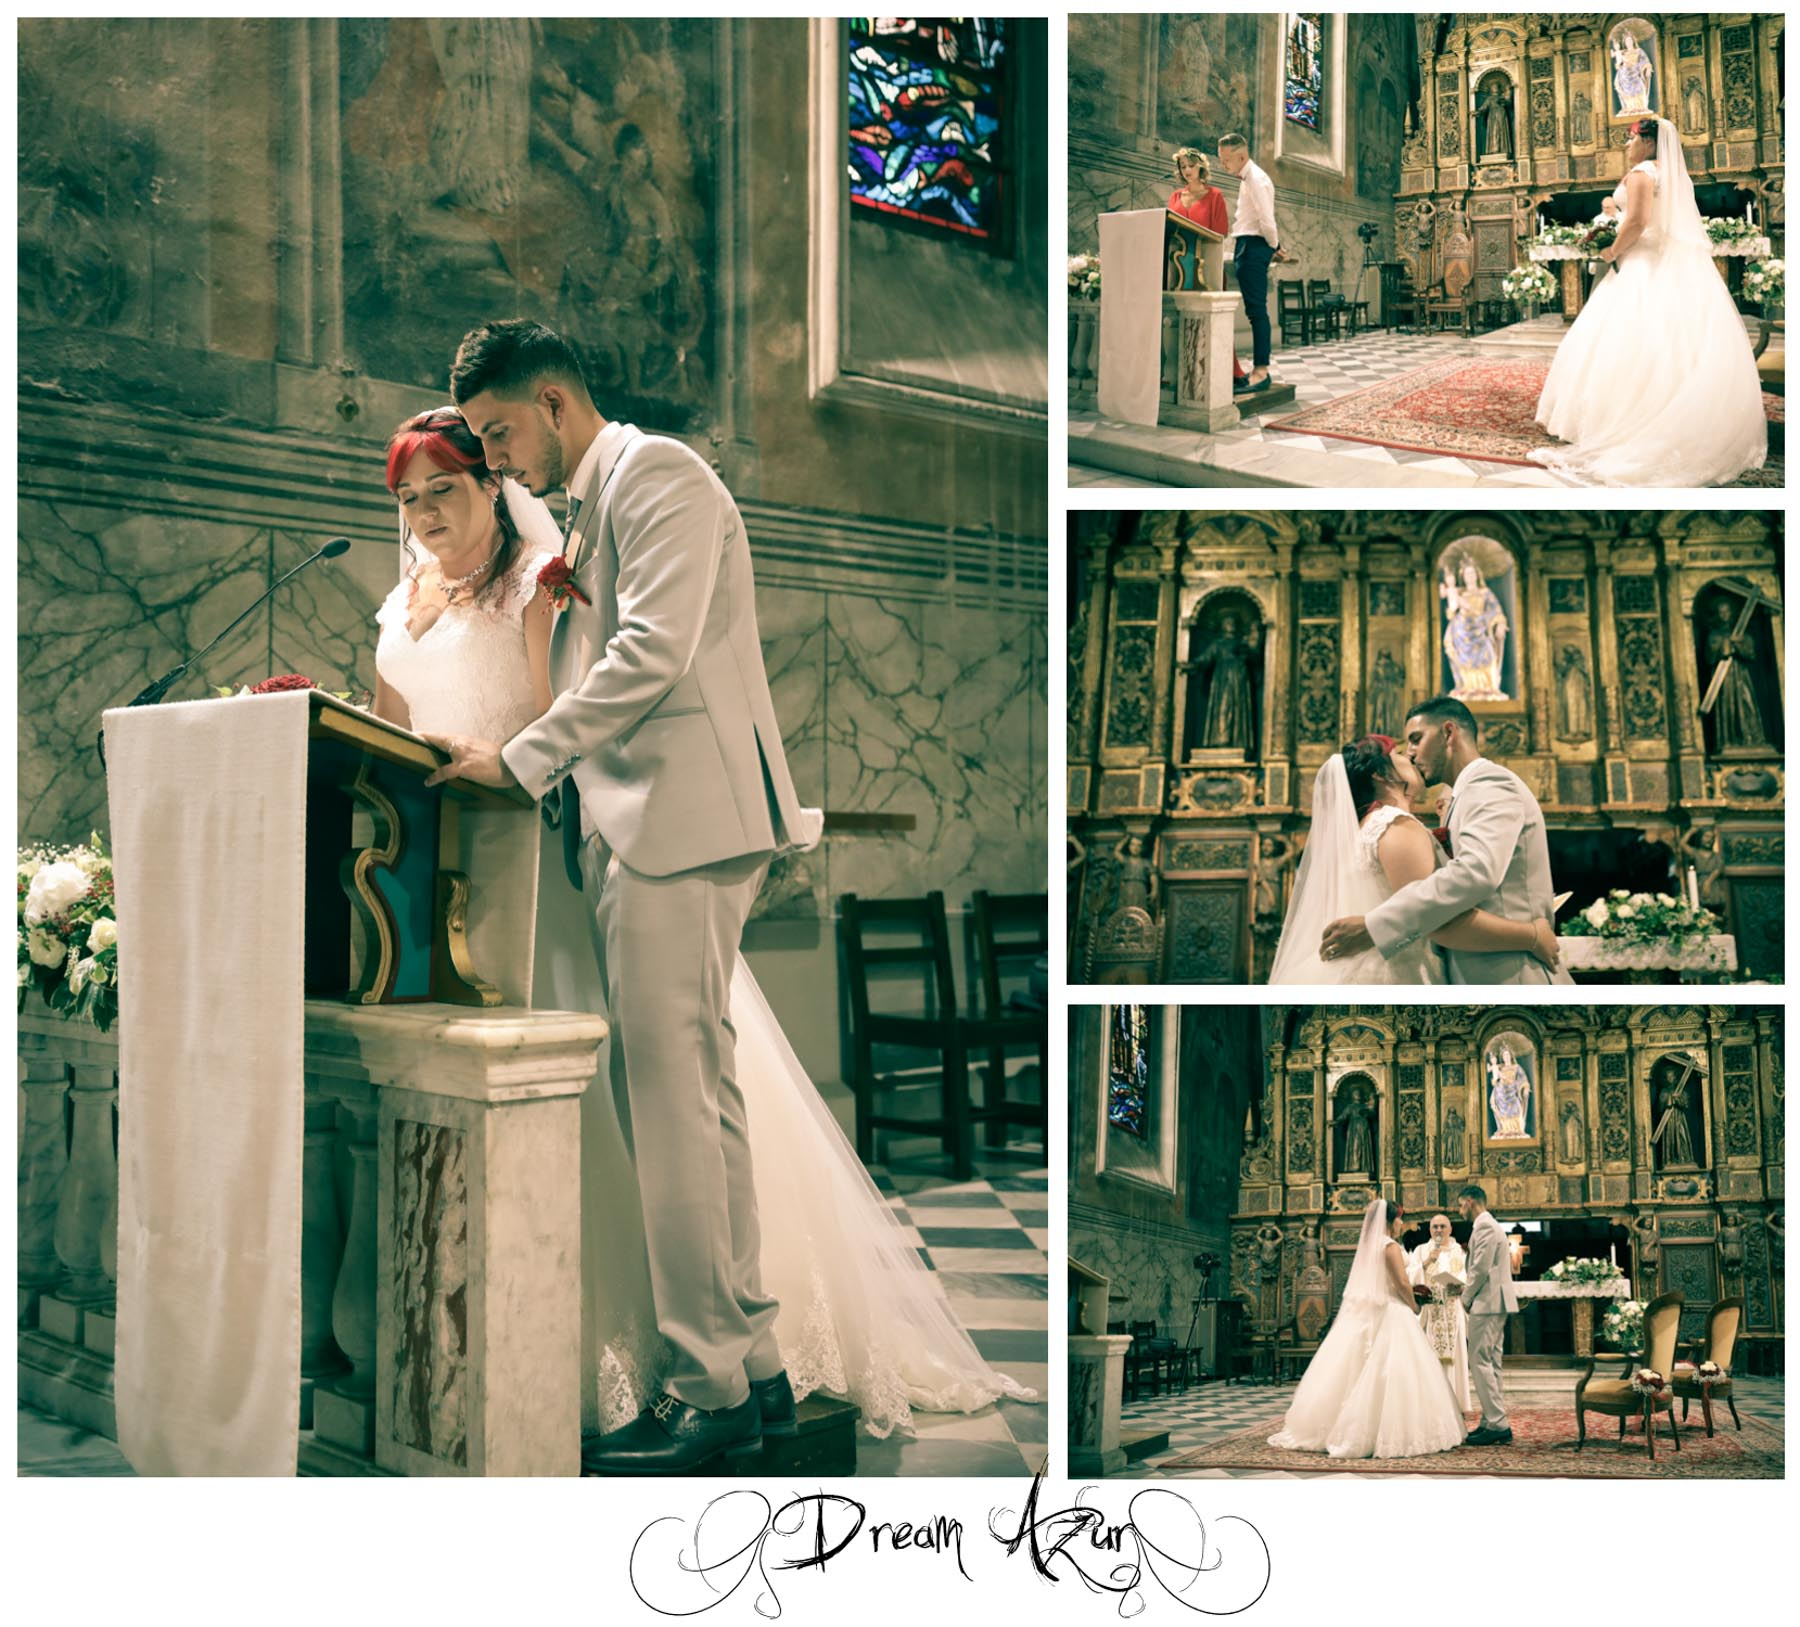 190824COMPO-Mariage-Cindy-et-Anthony-47